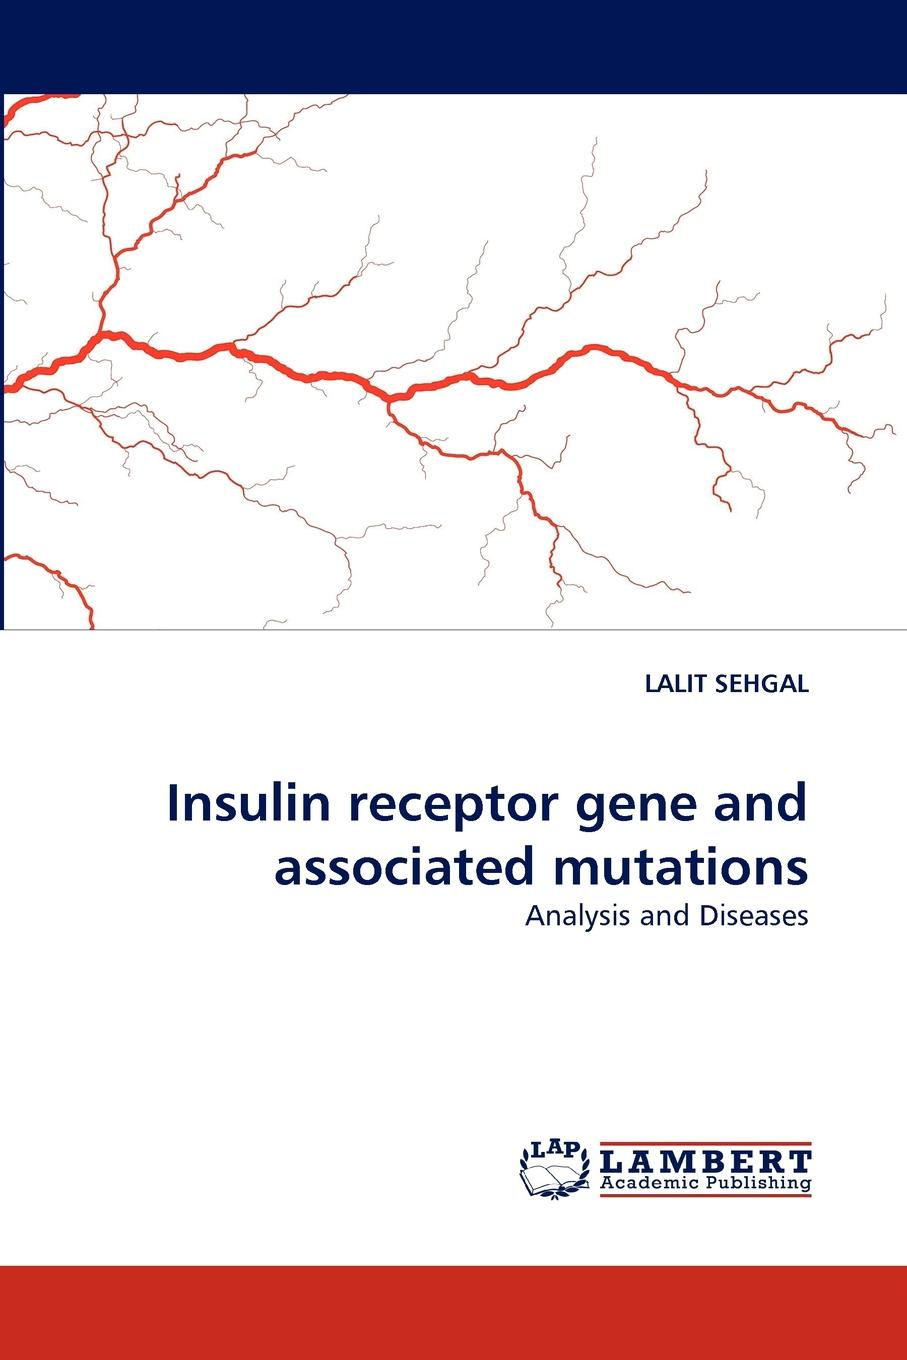 LALIT SEHGAL Insulin receptor gene and associated mutations oxygen consumption with cell function and insulin sensitivity